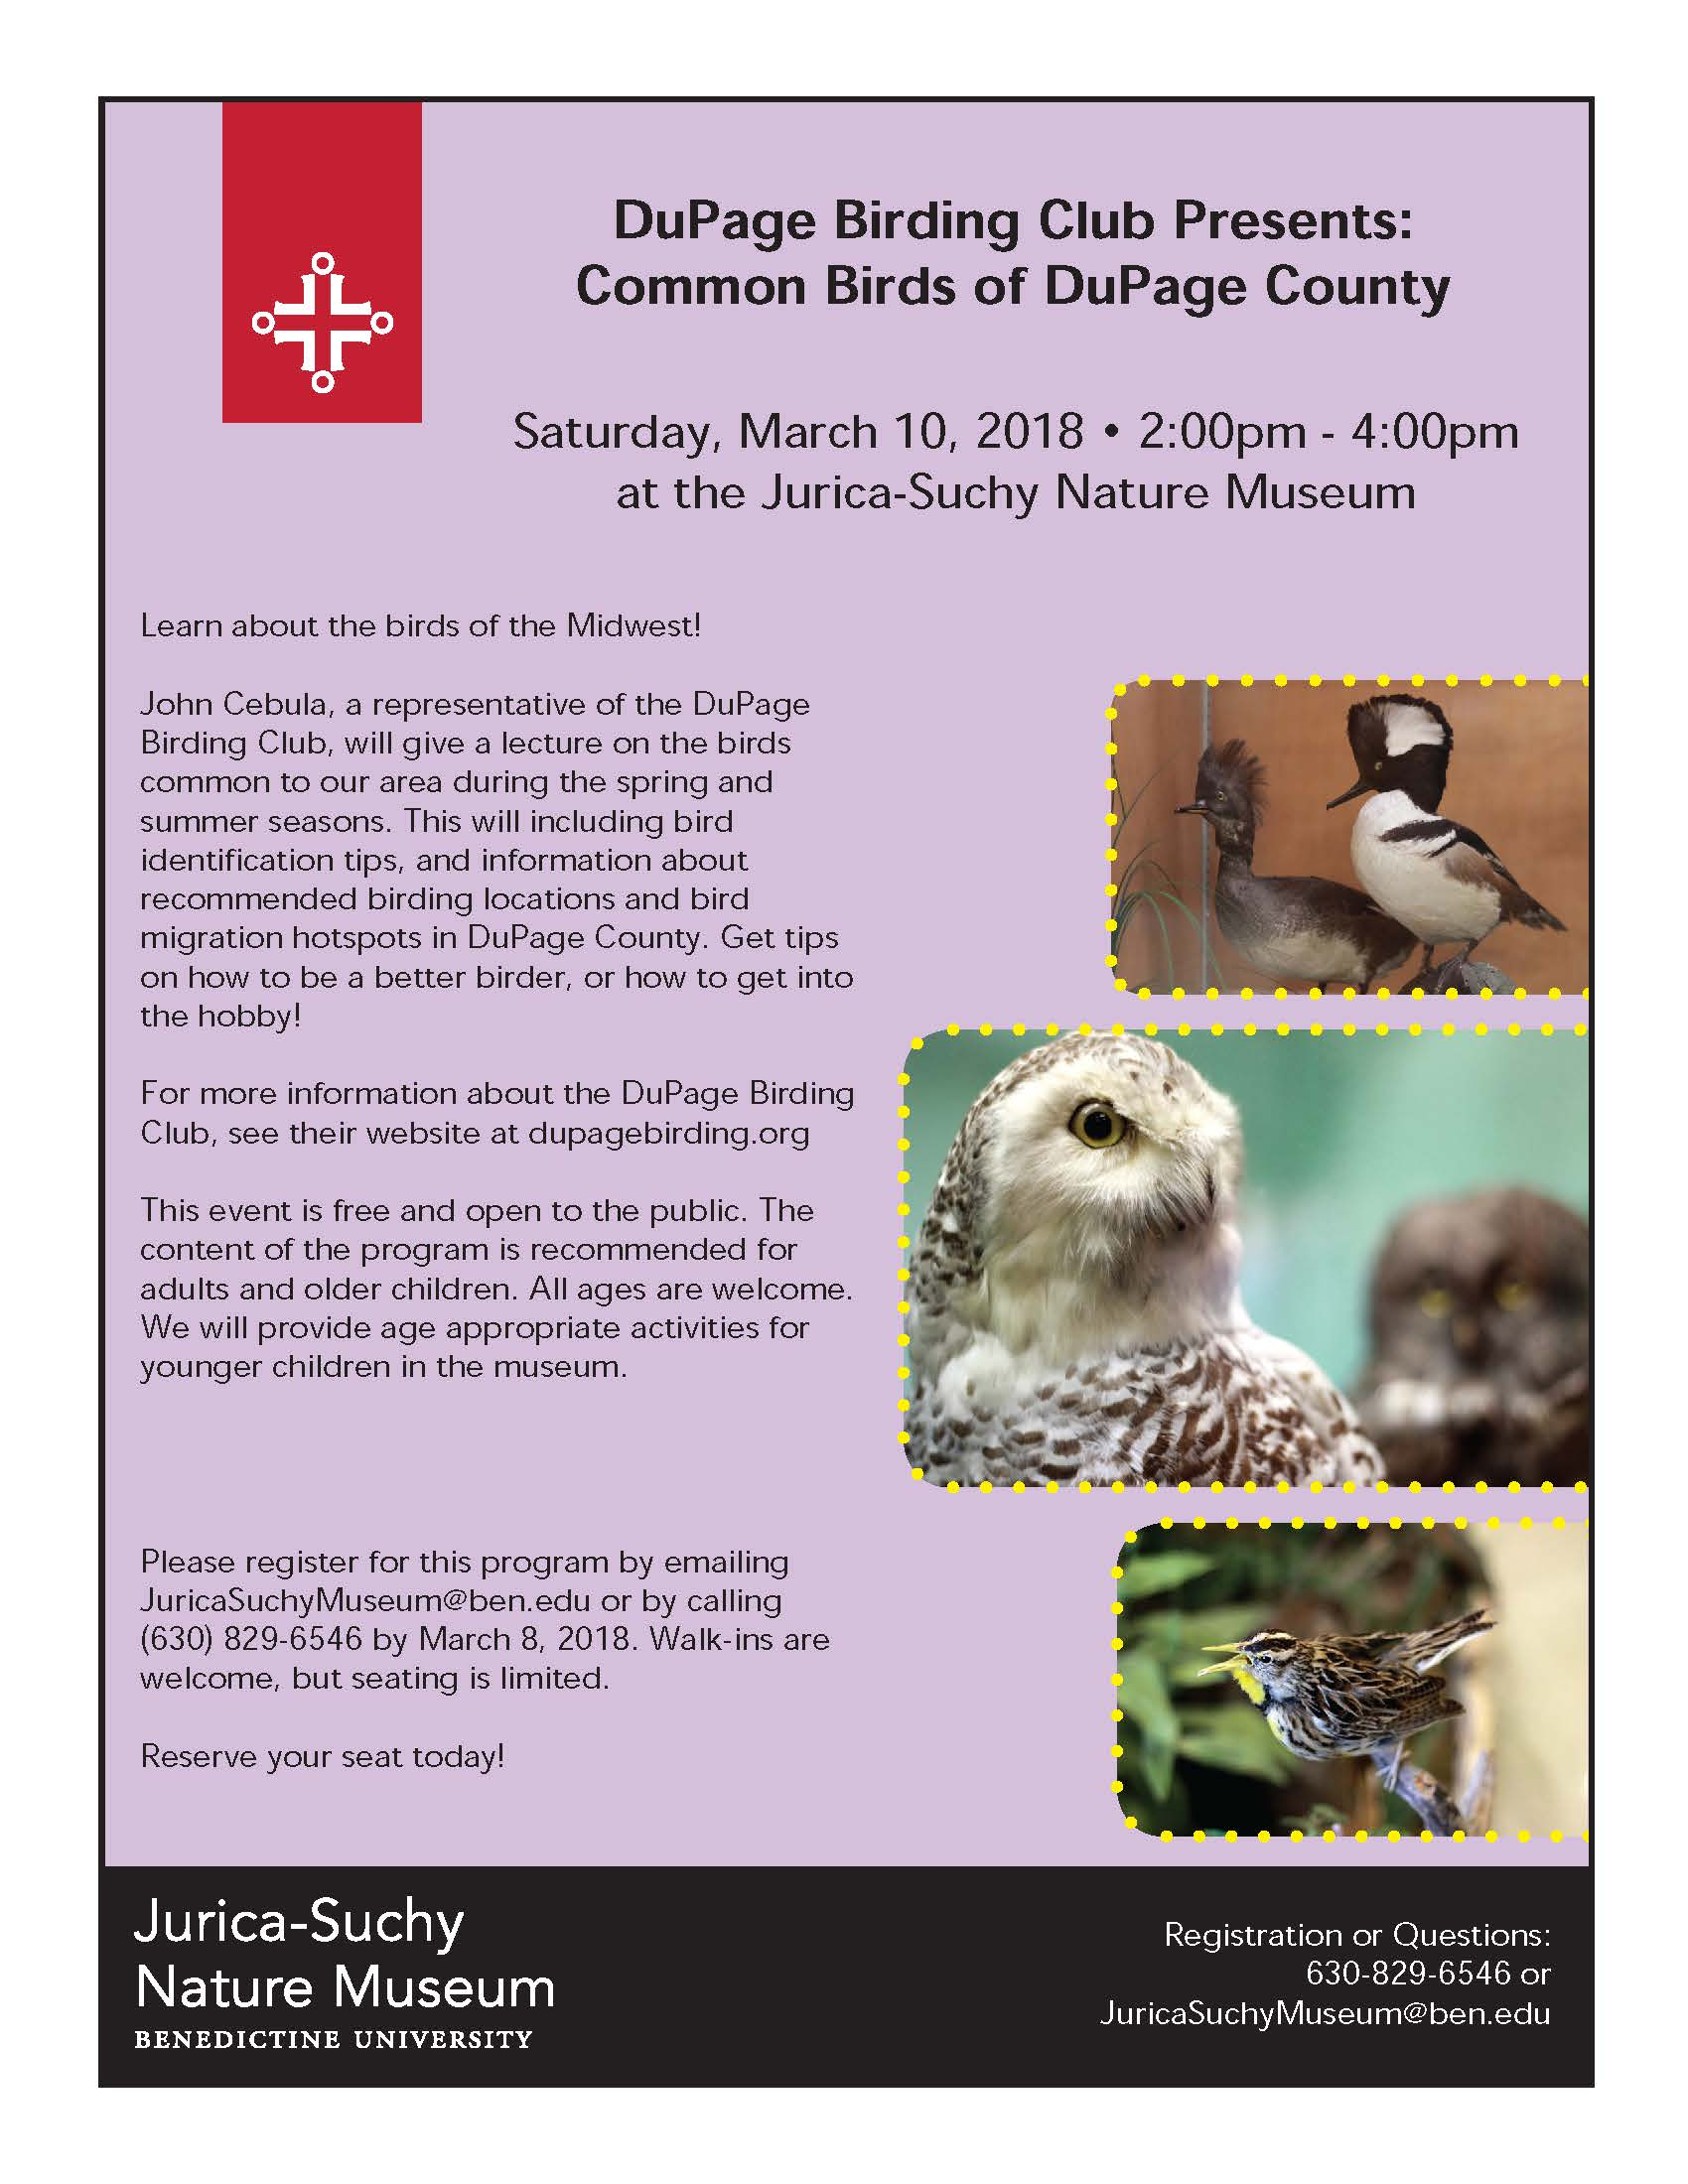 DuPage Birding Club lecture